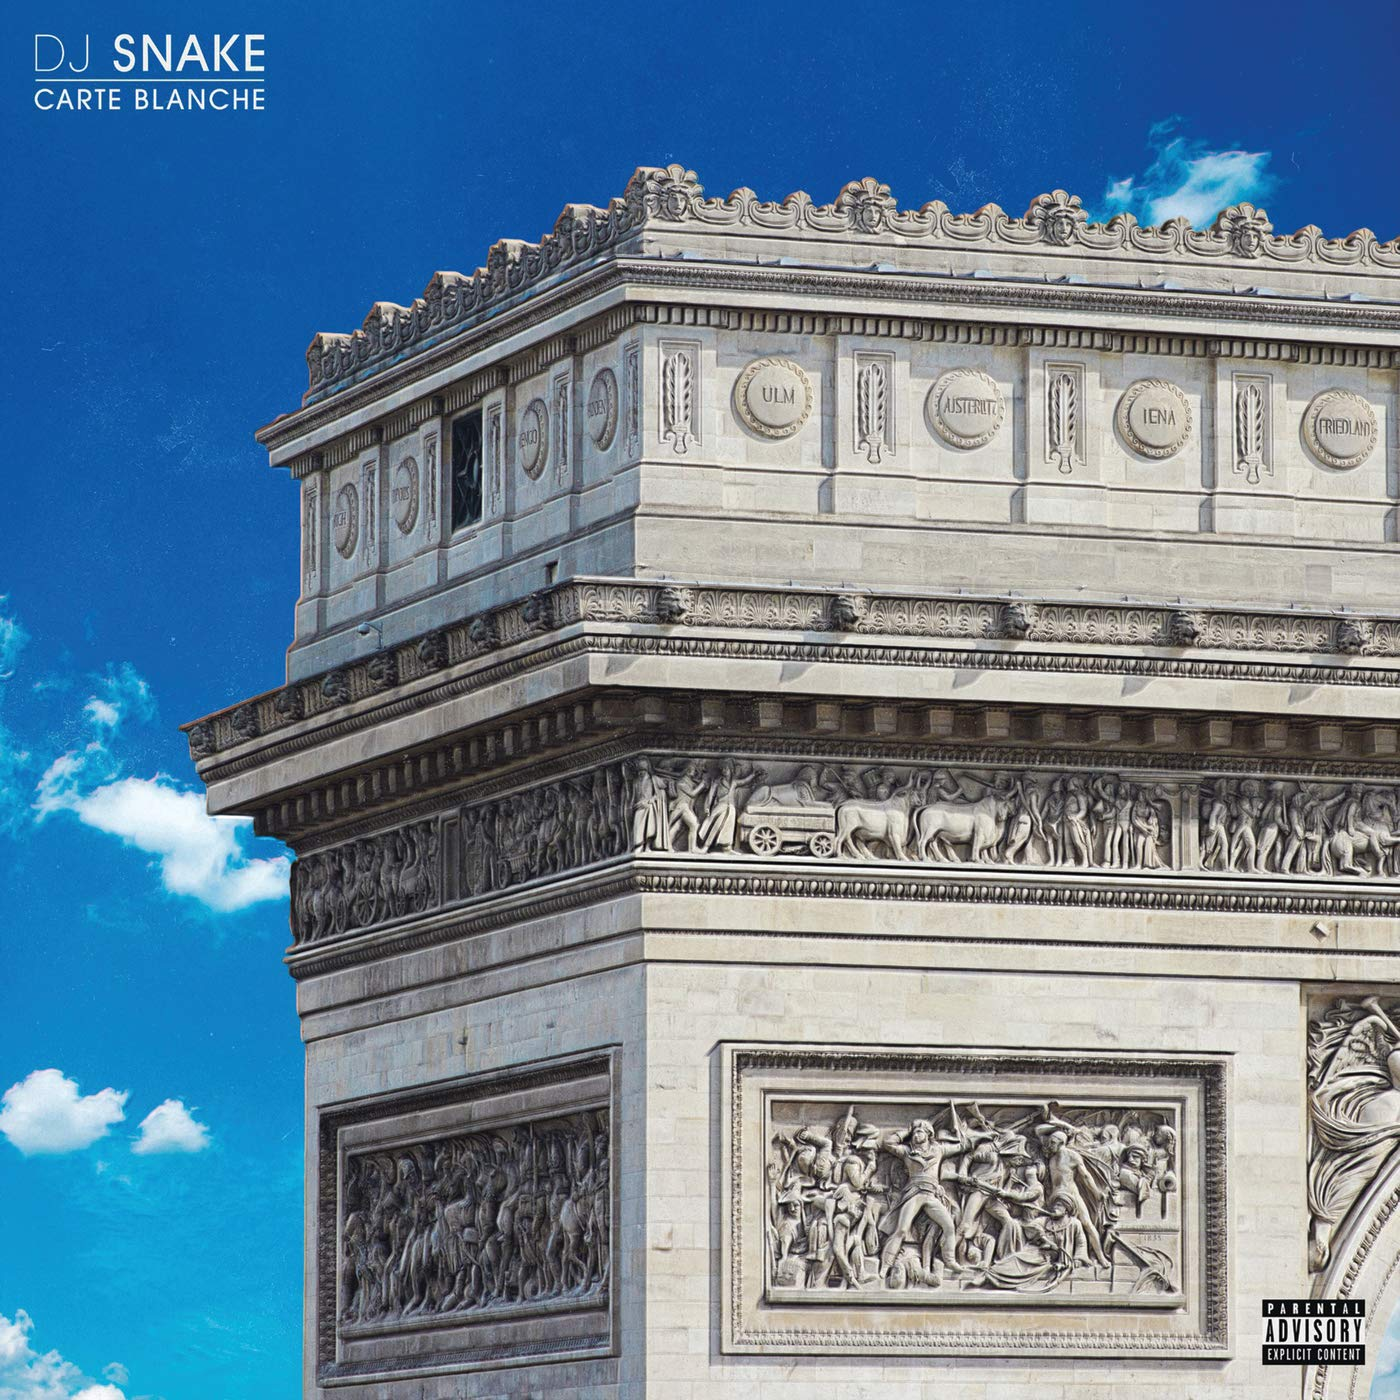 dj snake carte blanche DJ Snake, Various Artists   Carte Blanche   Exclusive Limited